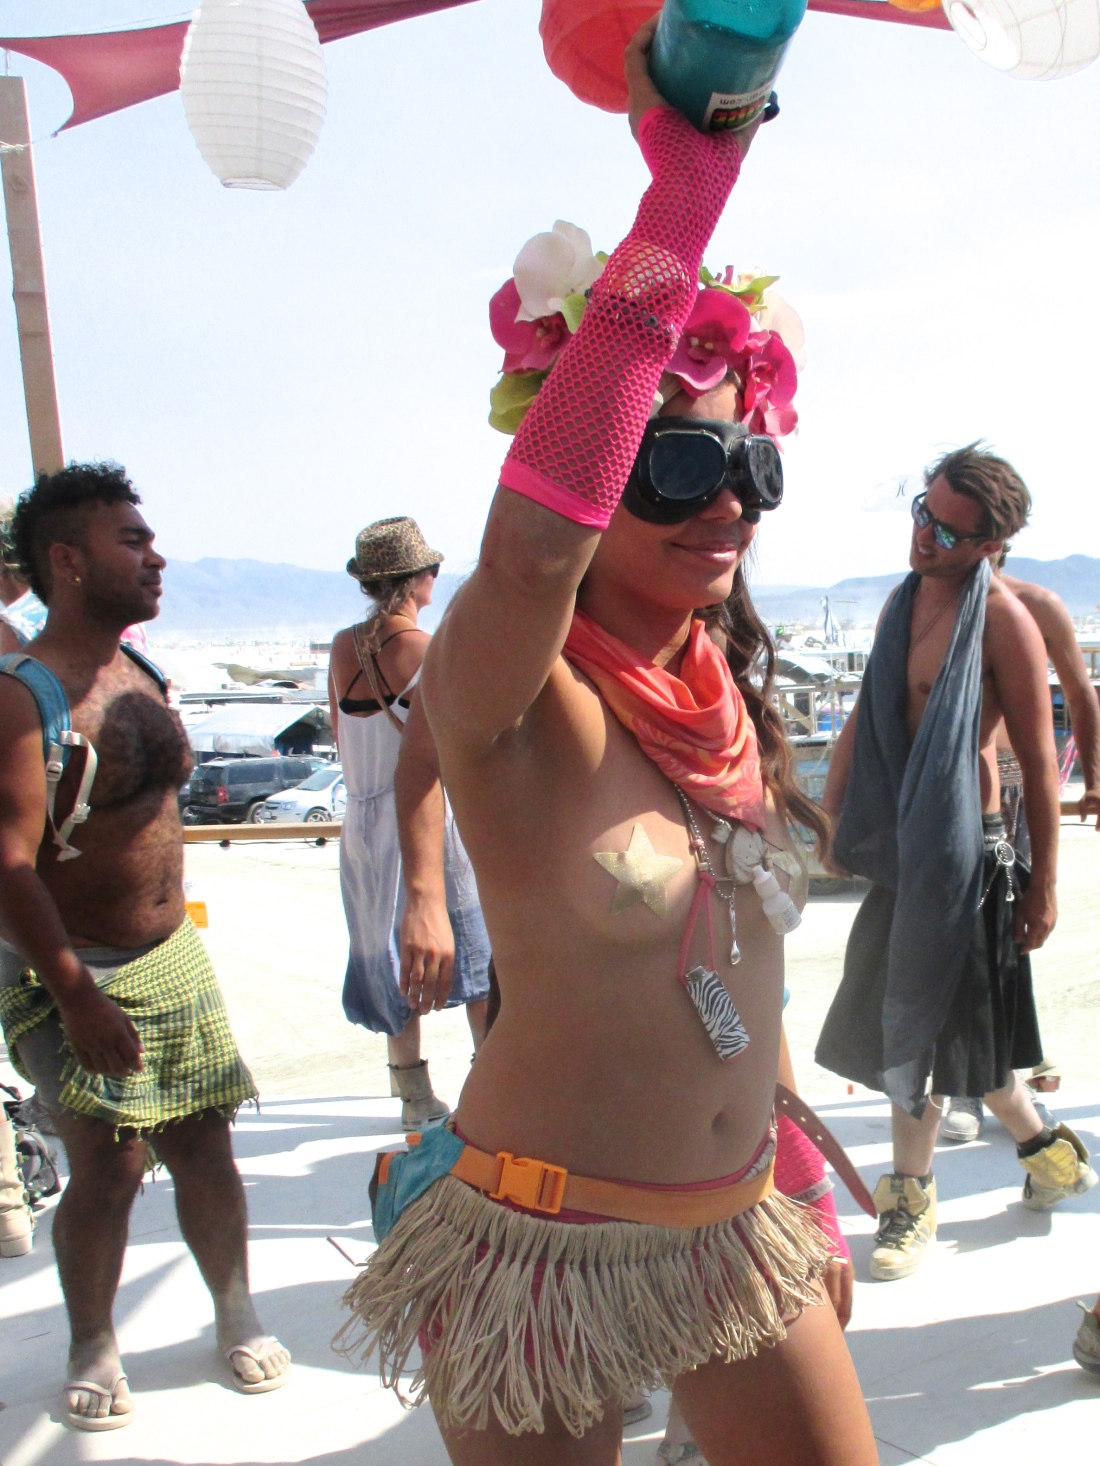 Partygirls at burning man 2013